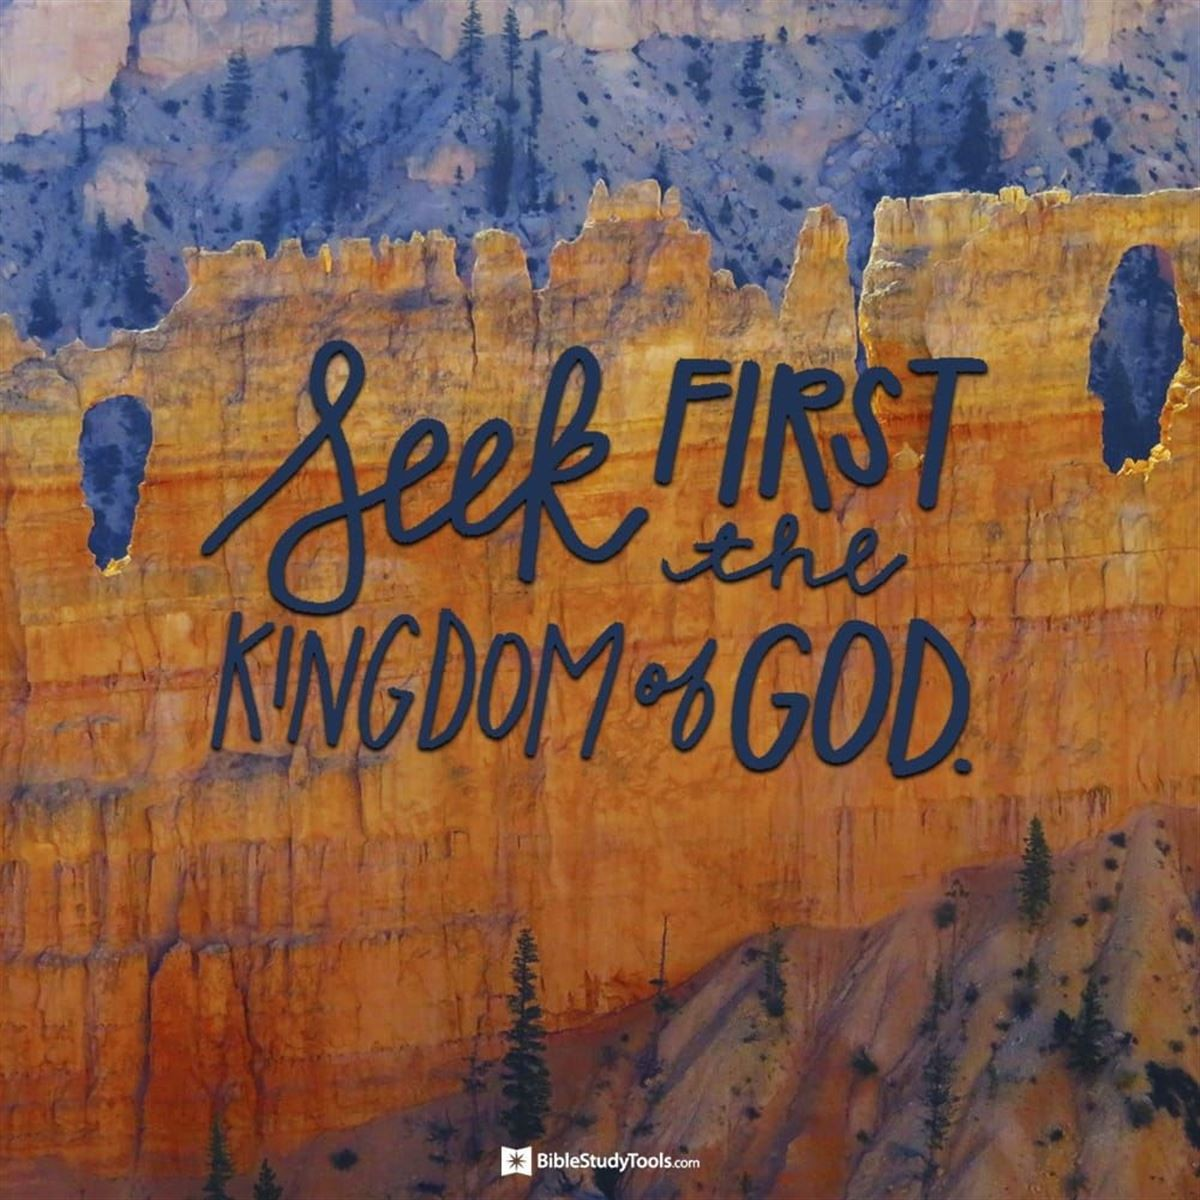 Your Daily Verse - Matthew 6:33